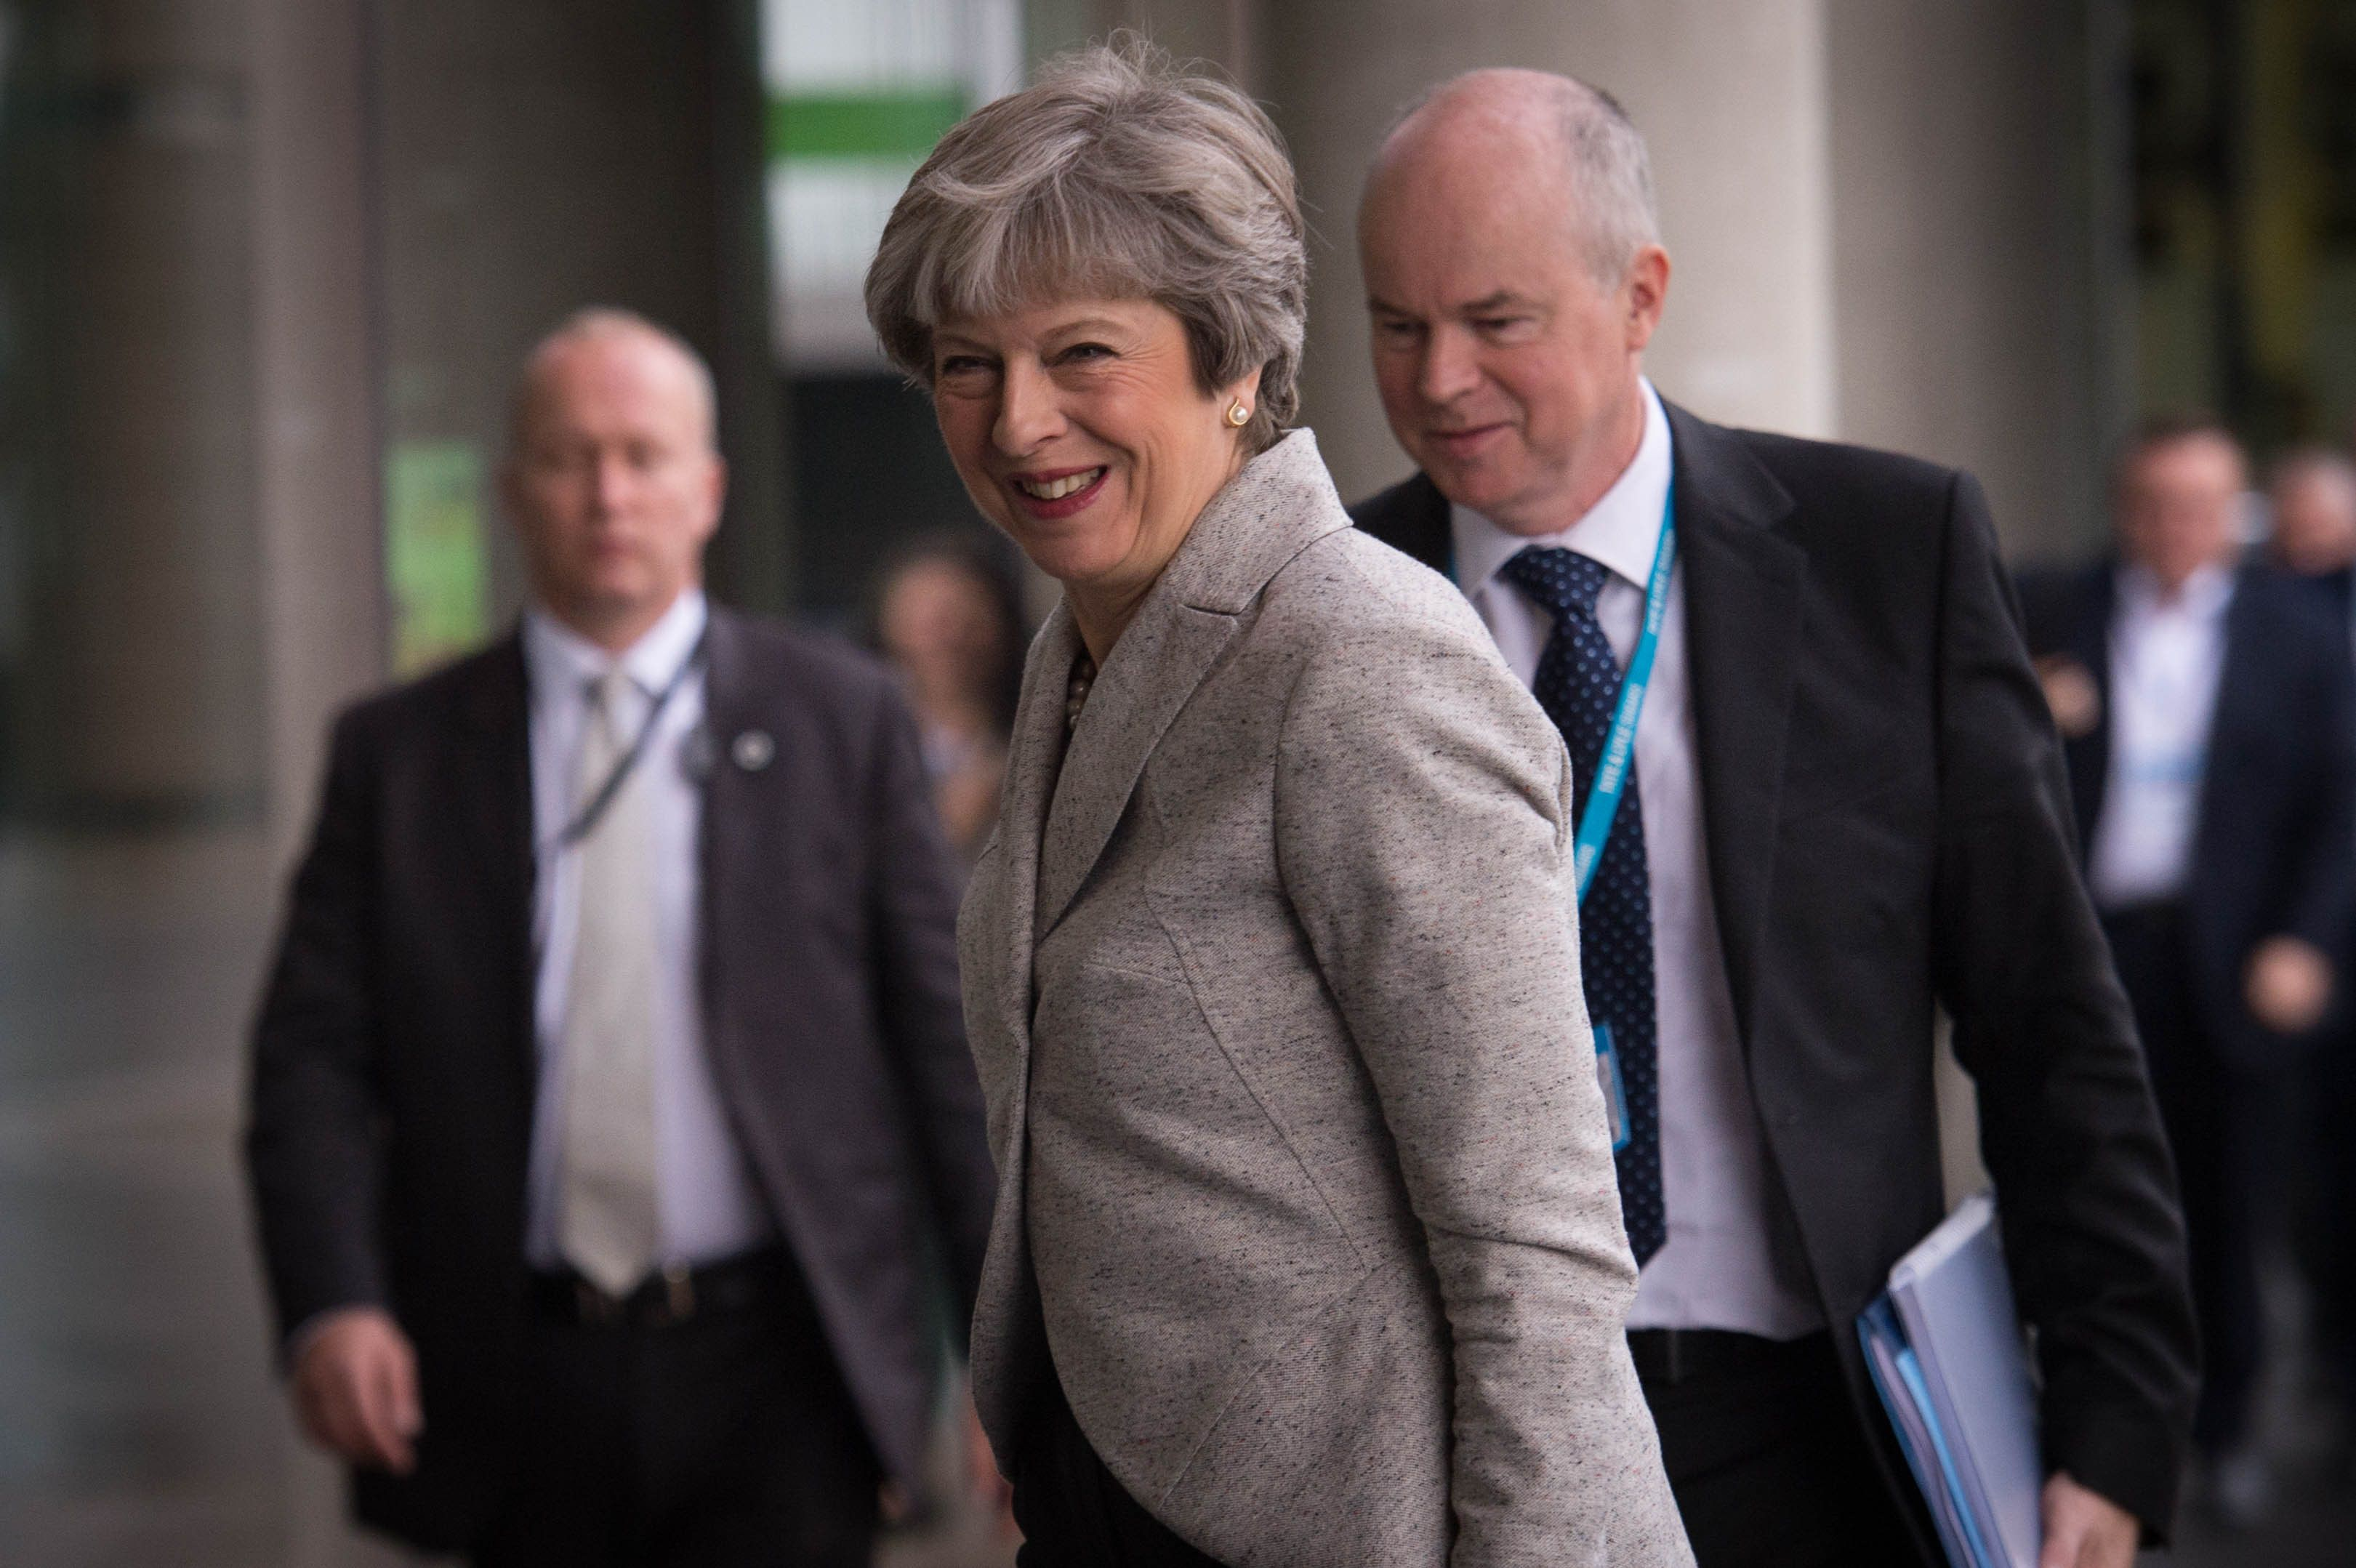 'Help is on its way' as May pledges £2bn for affordable housing